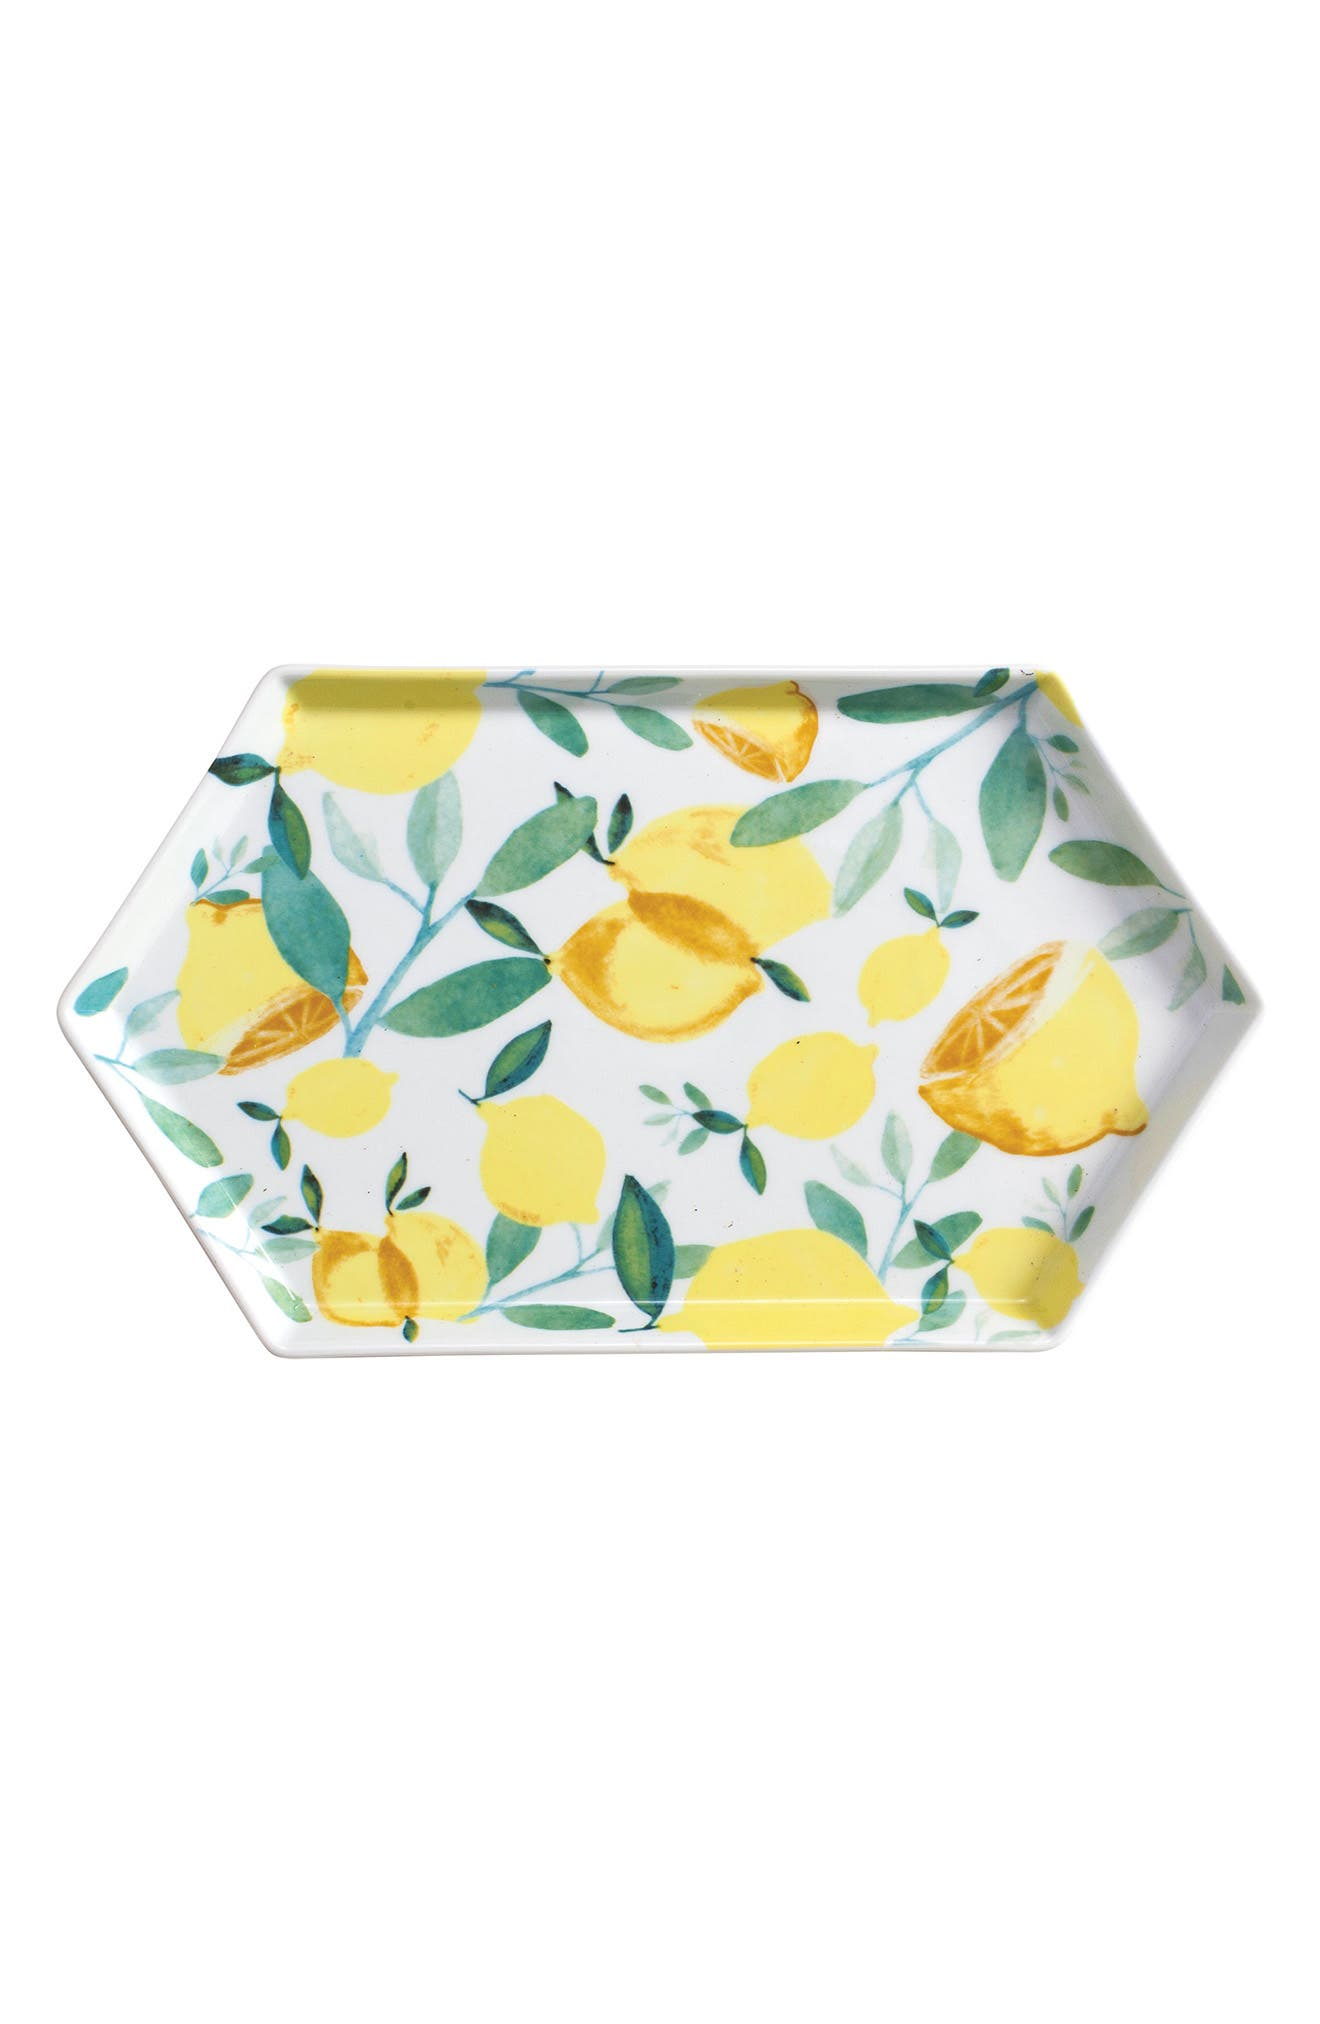 Lemon Hexagon Tray,                         Main,                         color, YELLOW MULTI